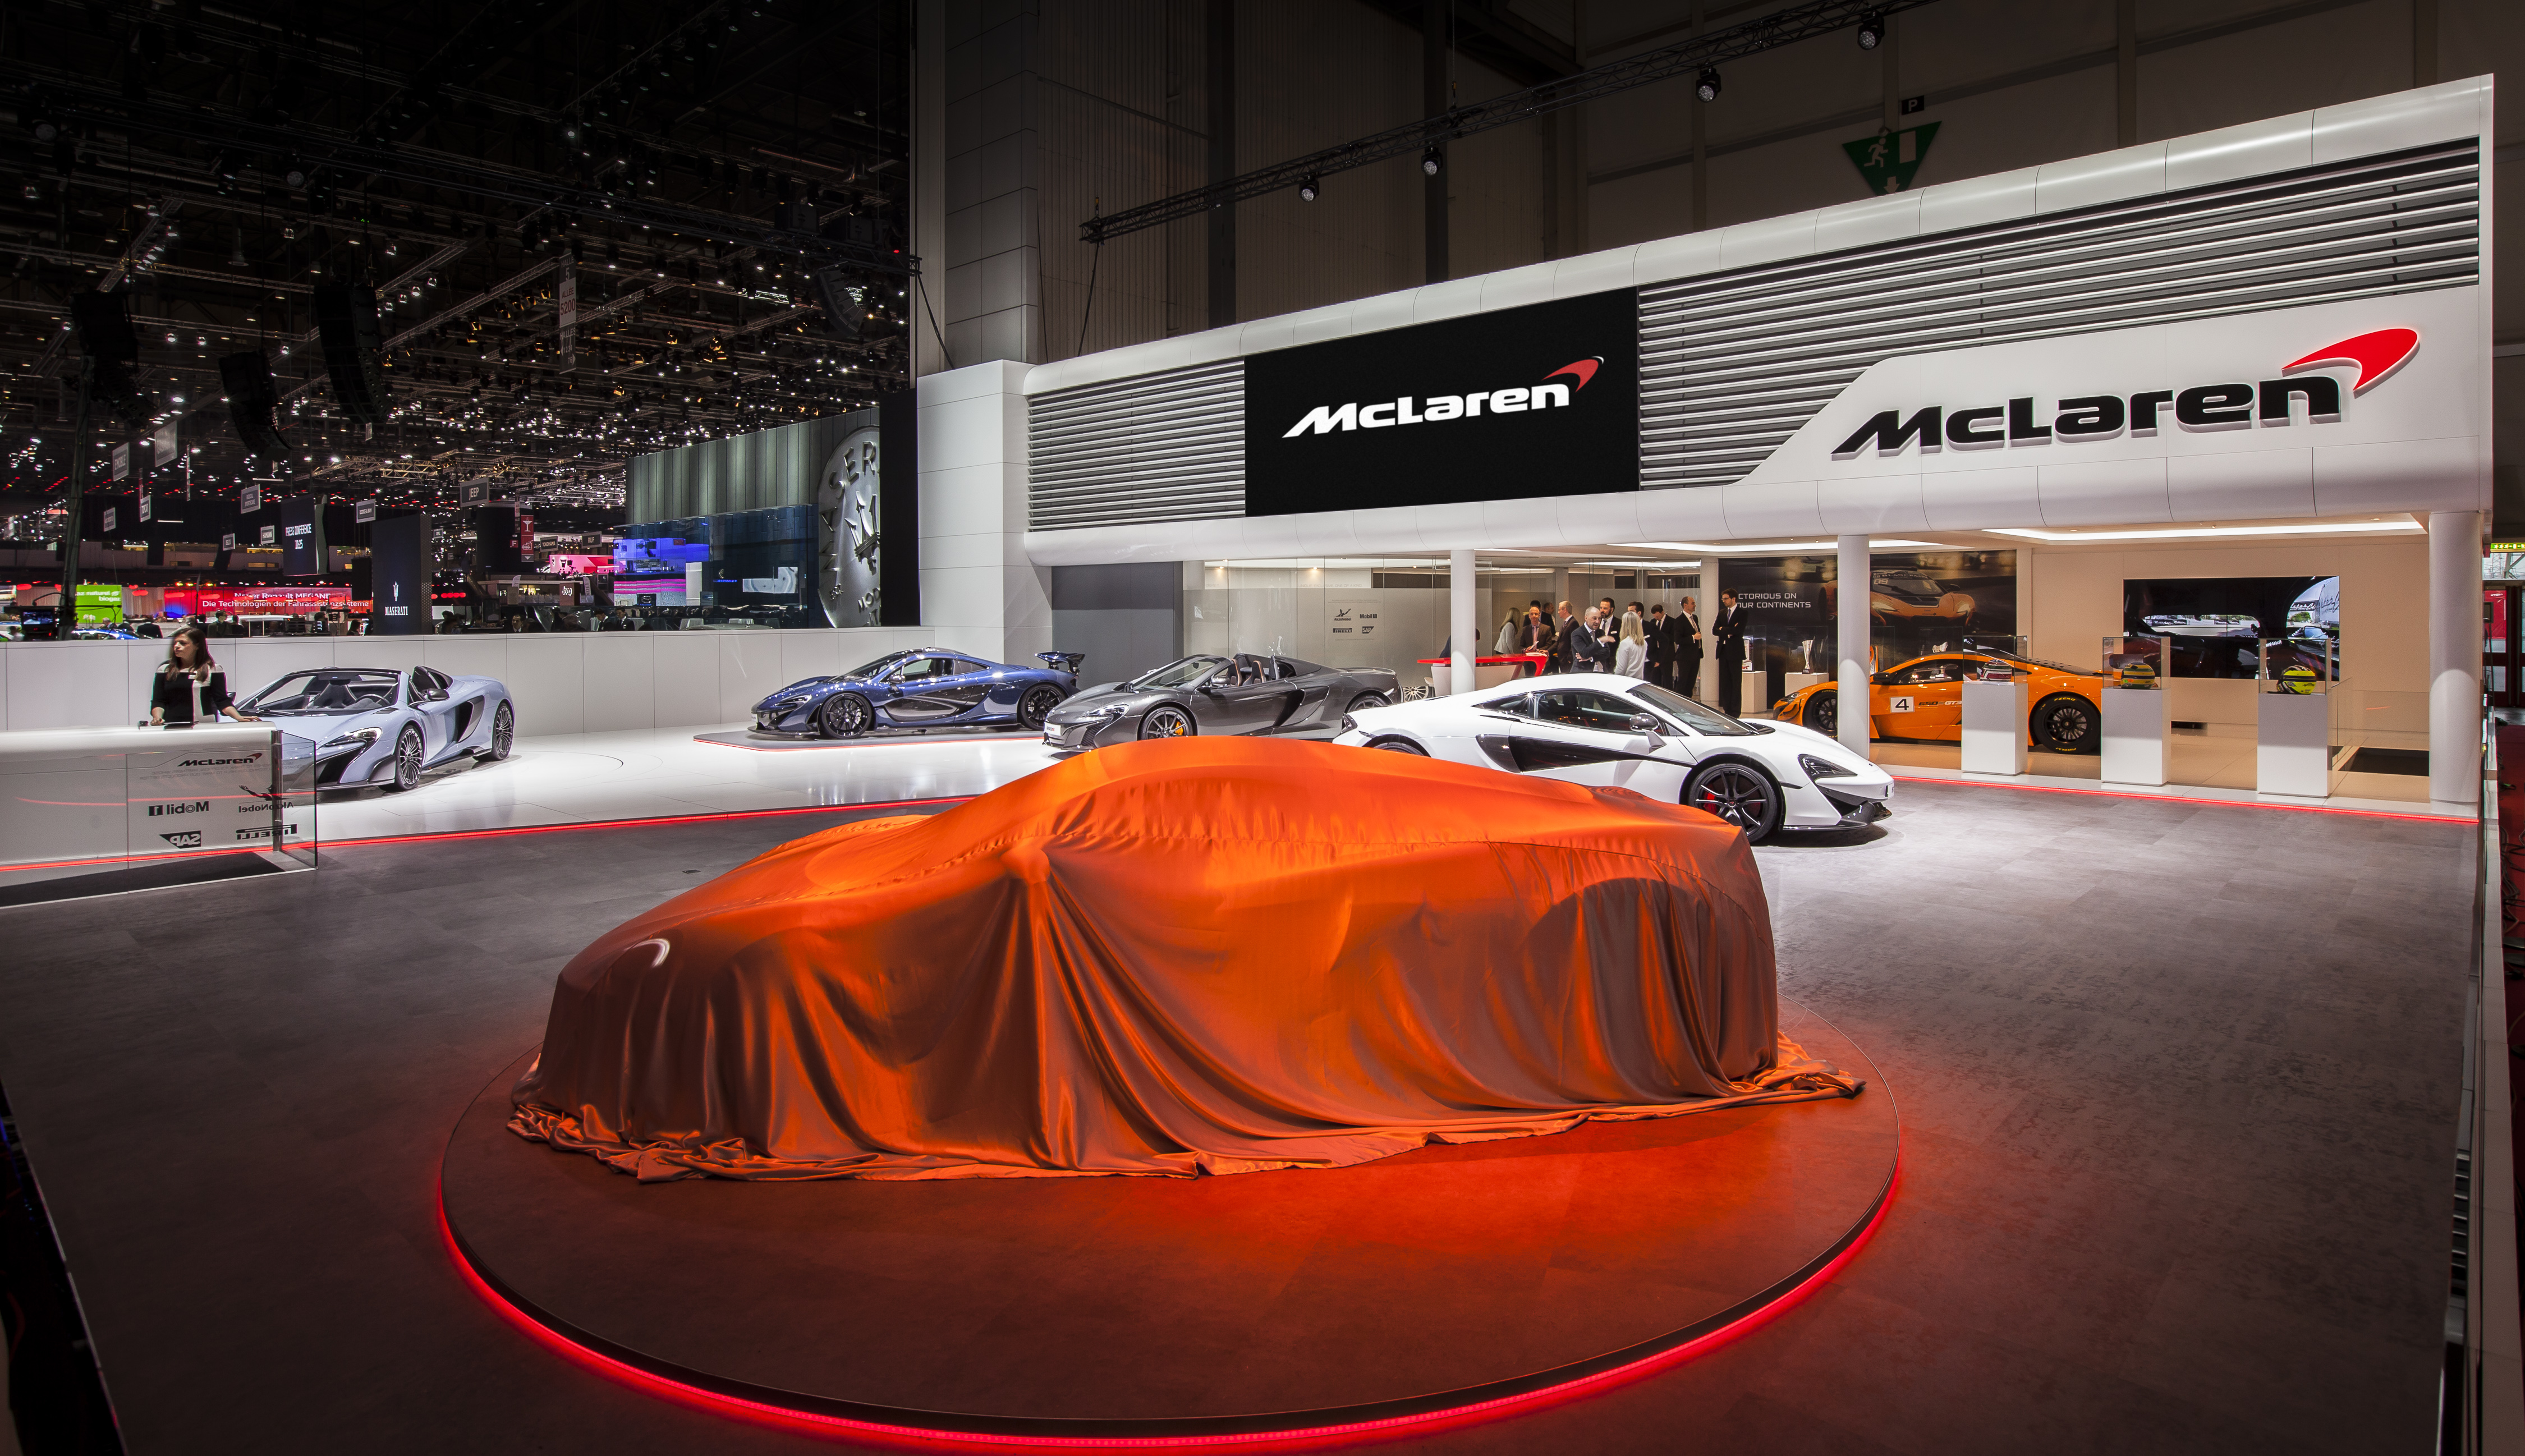 McLaren debuted its latest model, the 570GT at the Geneva Motorshow this week.